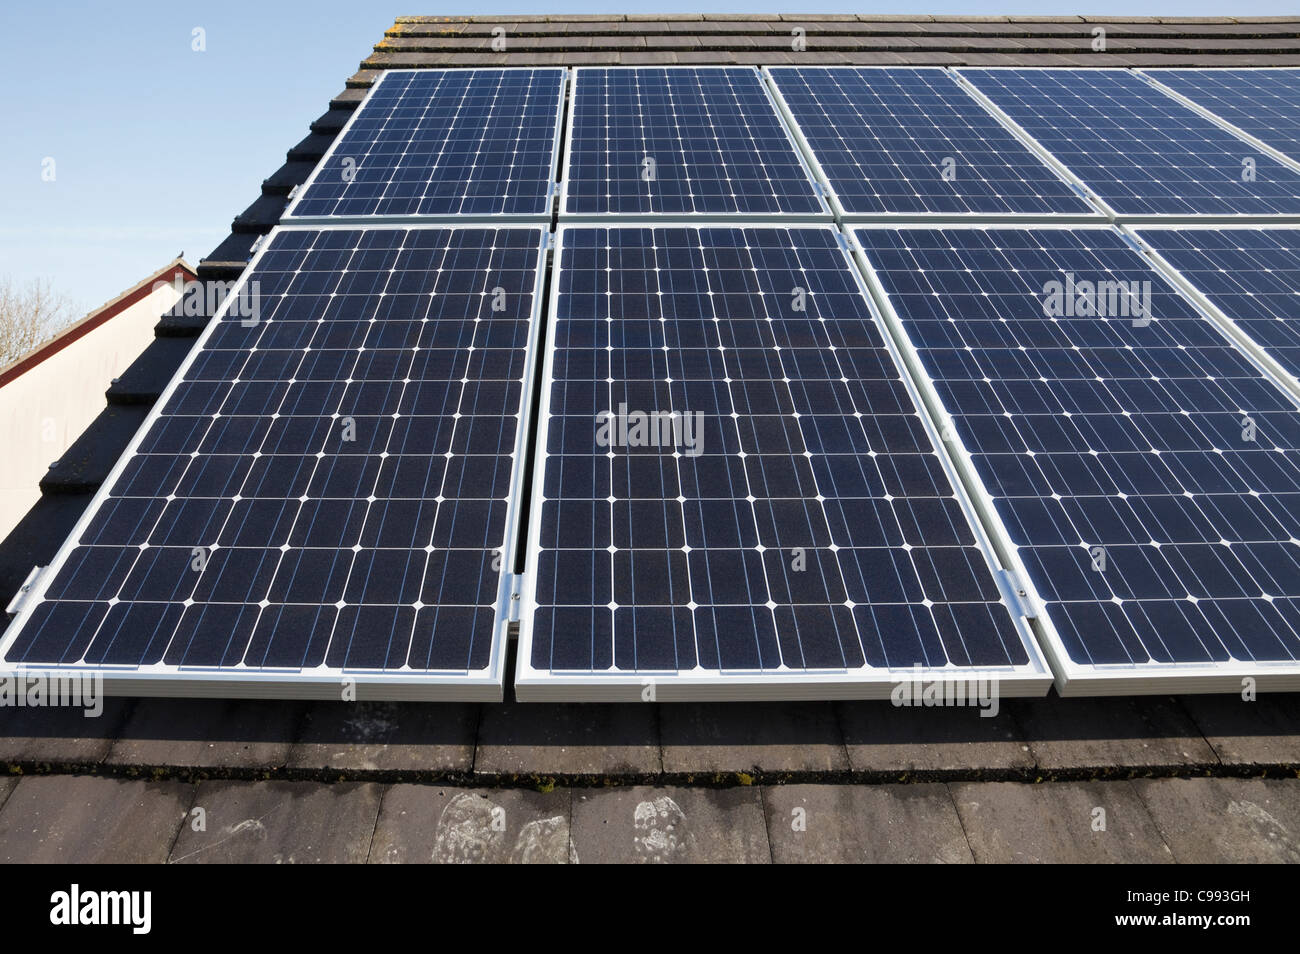 UK, Britain. Solar panels on a house roof with blue sky. - Stock Image